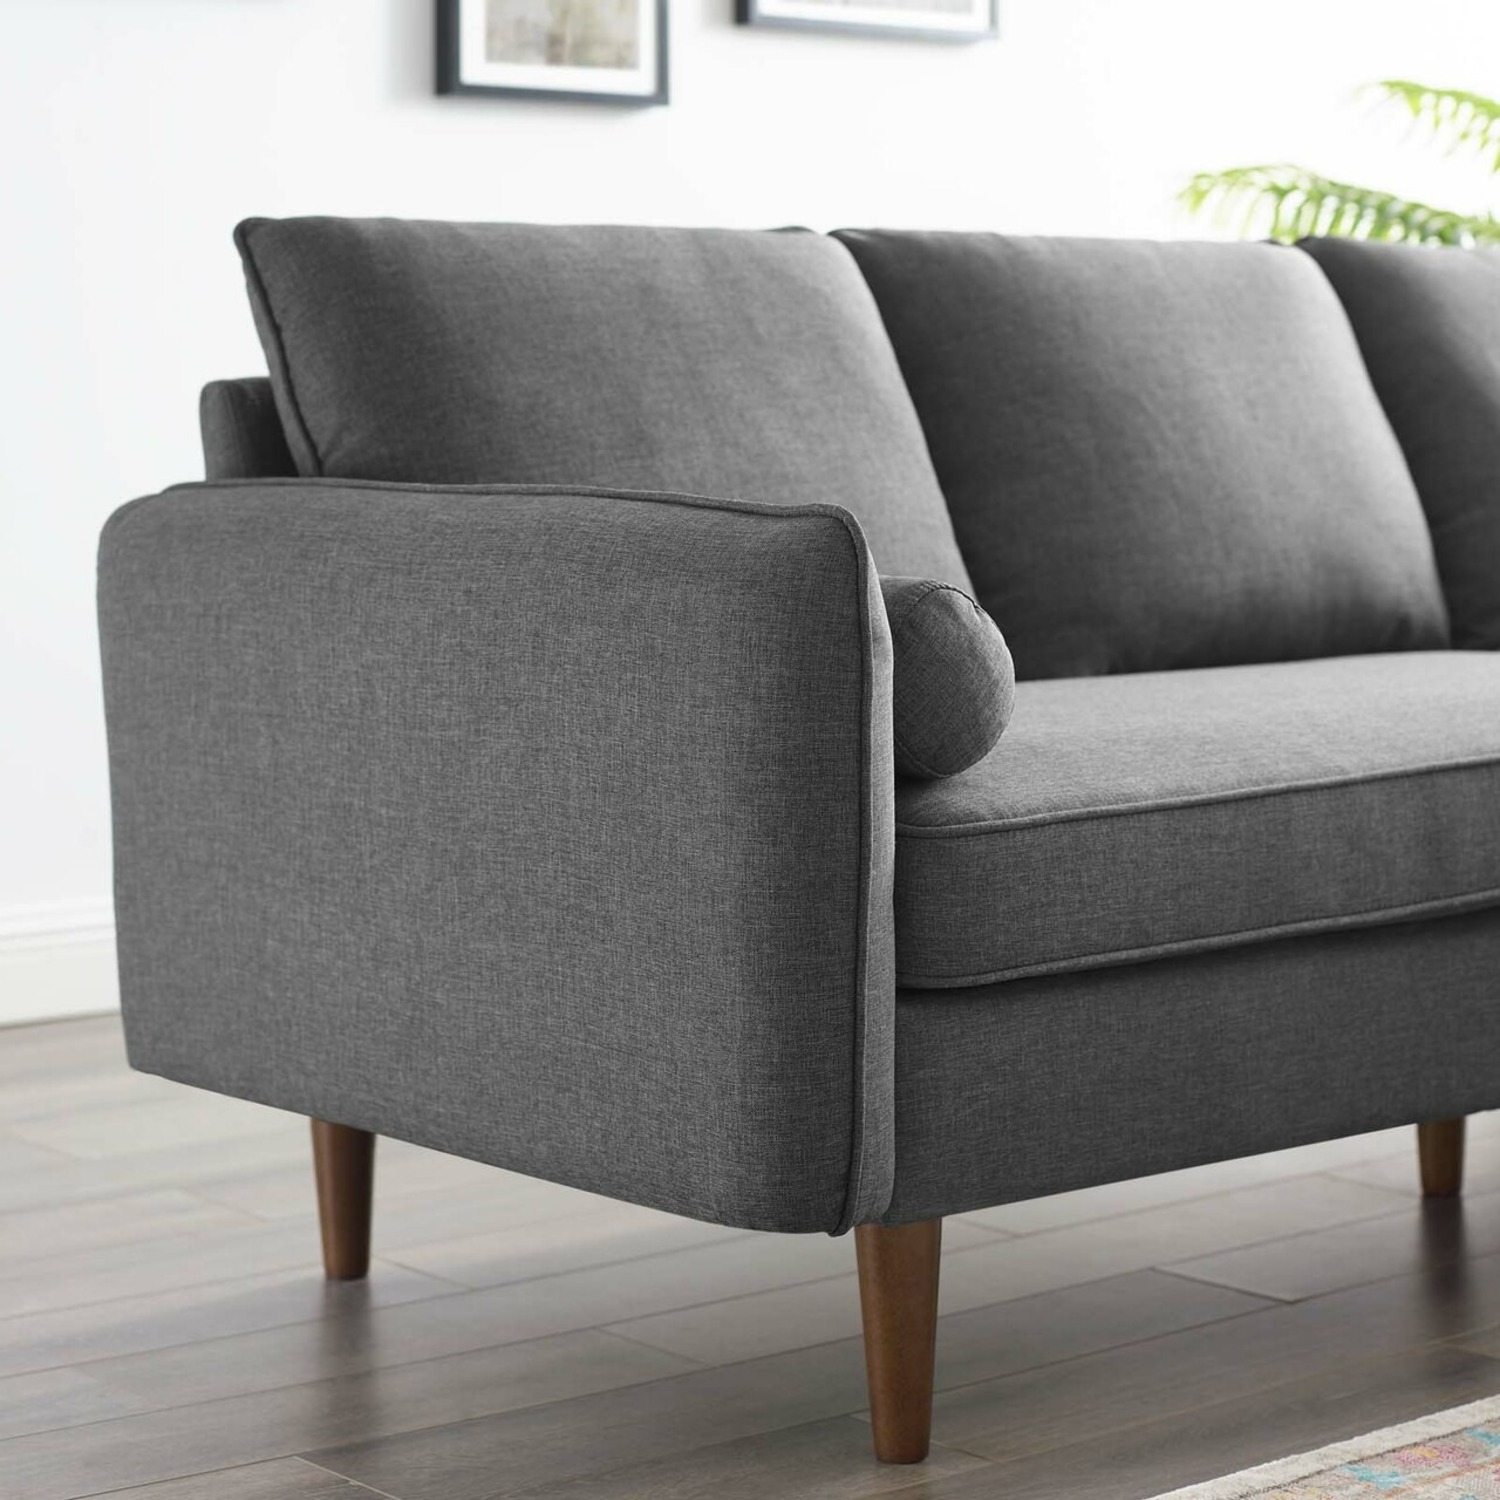 2-Piece Sectional Sofa In Gray Upholstery Finish - image-7